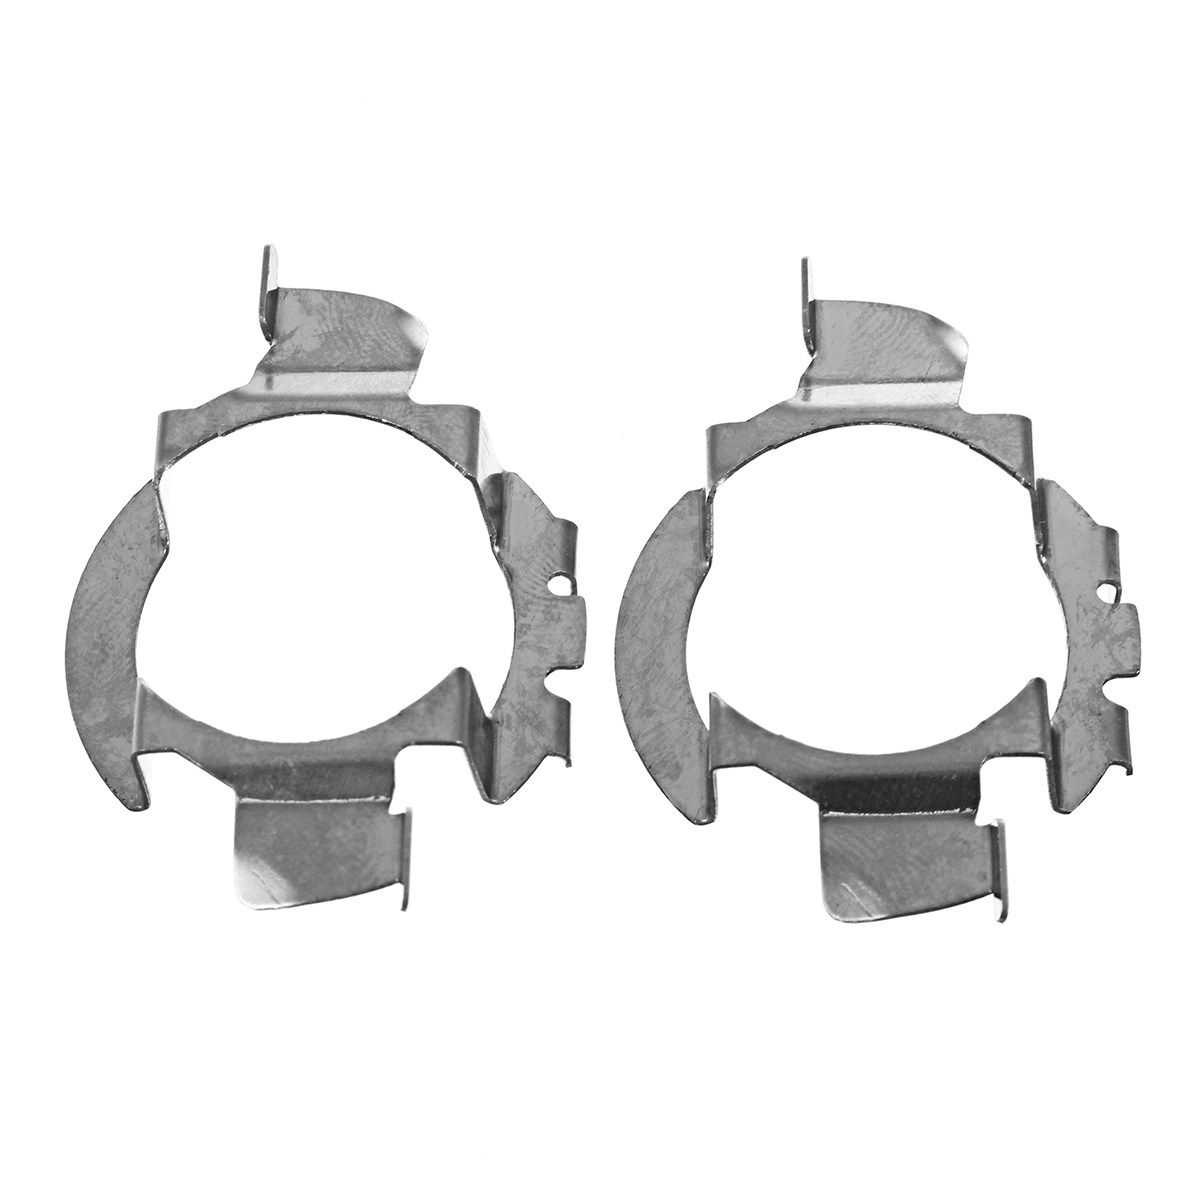 1Pair <font><b>H7</b></font> <font><b>Led</b></font> <font><b>Headlight</b></font> Adapters Base Bulb Holders for <font><b>BMW</b></font> <font><b>E60</b></font> E61 for VW MK6 for NISSAN QASHQAI for Audi A3 Lamp Holder image